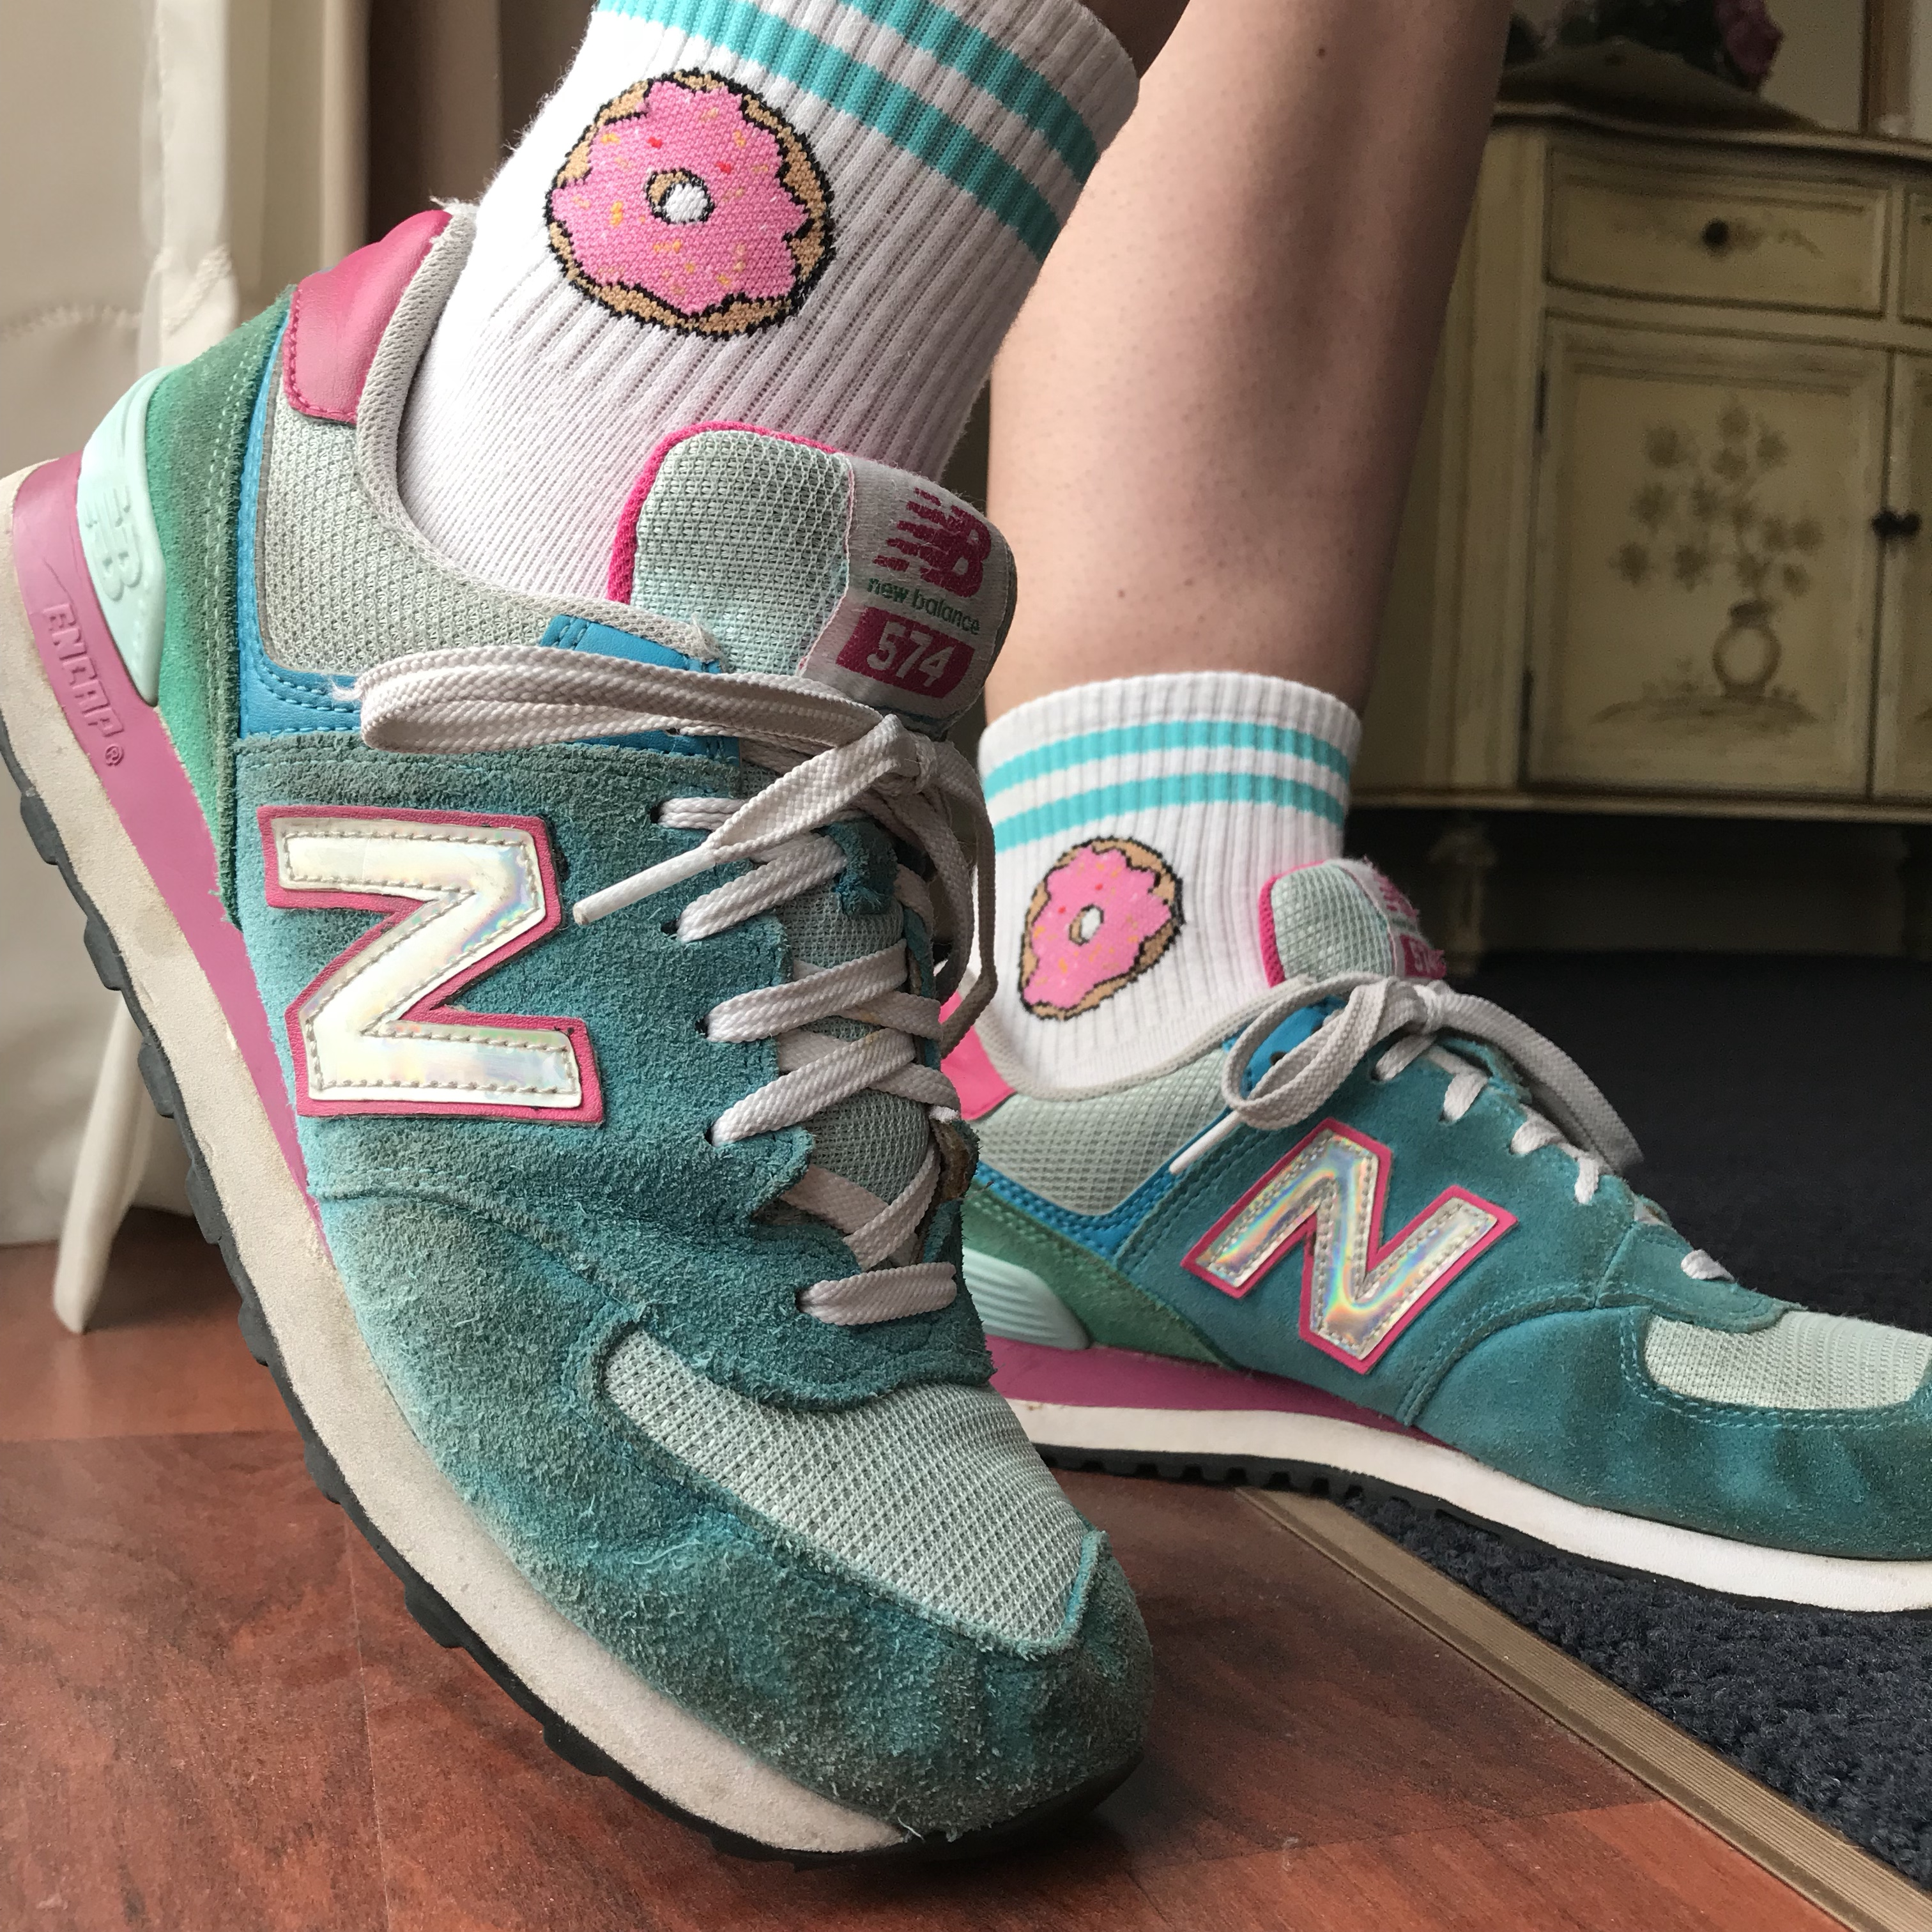 Colourful new balance shoes🌈 I love the